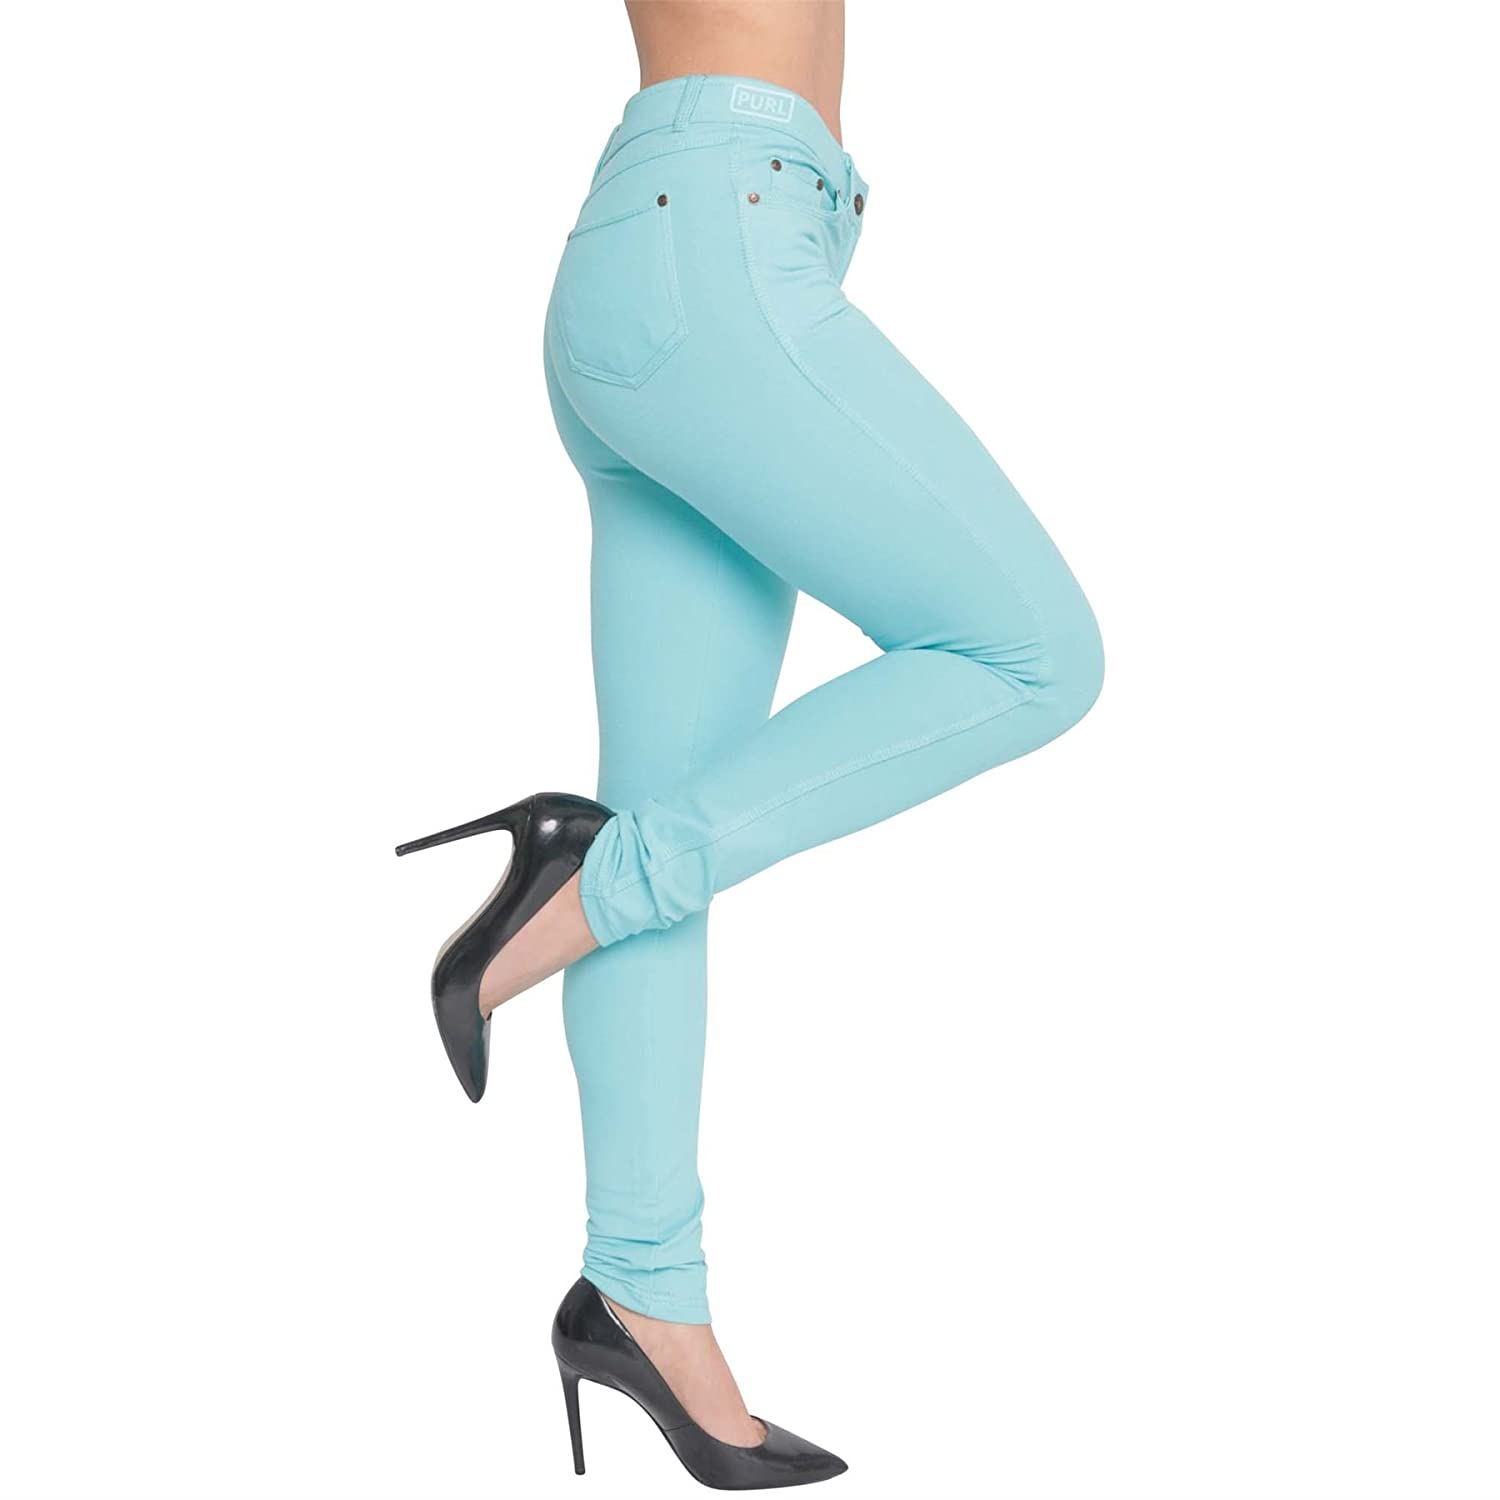 Made By Malaika® New Ladies Womens Skinny Jeans Fit Coloured Jeggings Pencil Stretchy Trousers Long Legs Summer Denim Pants UK Plus Size 8-26 United Kingdom